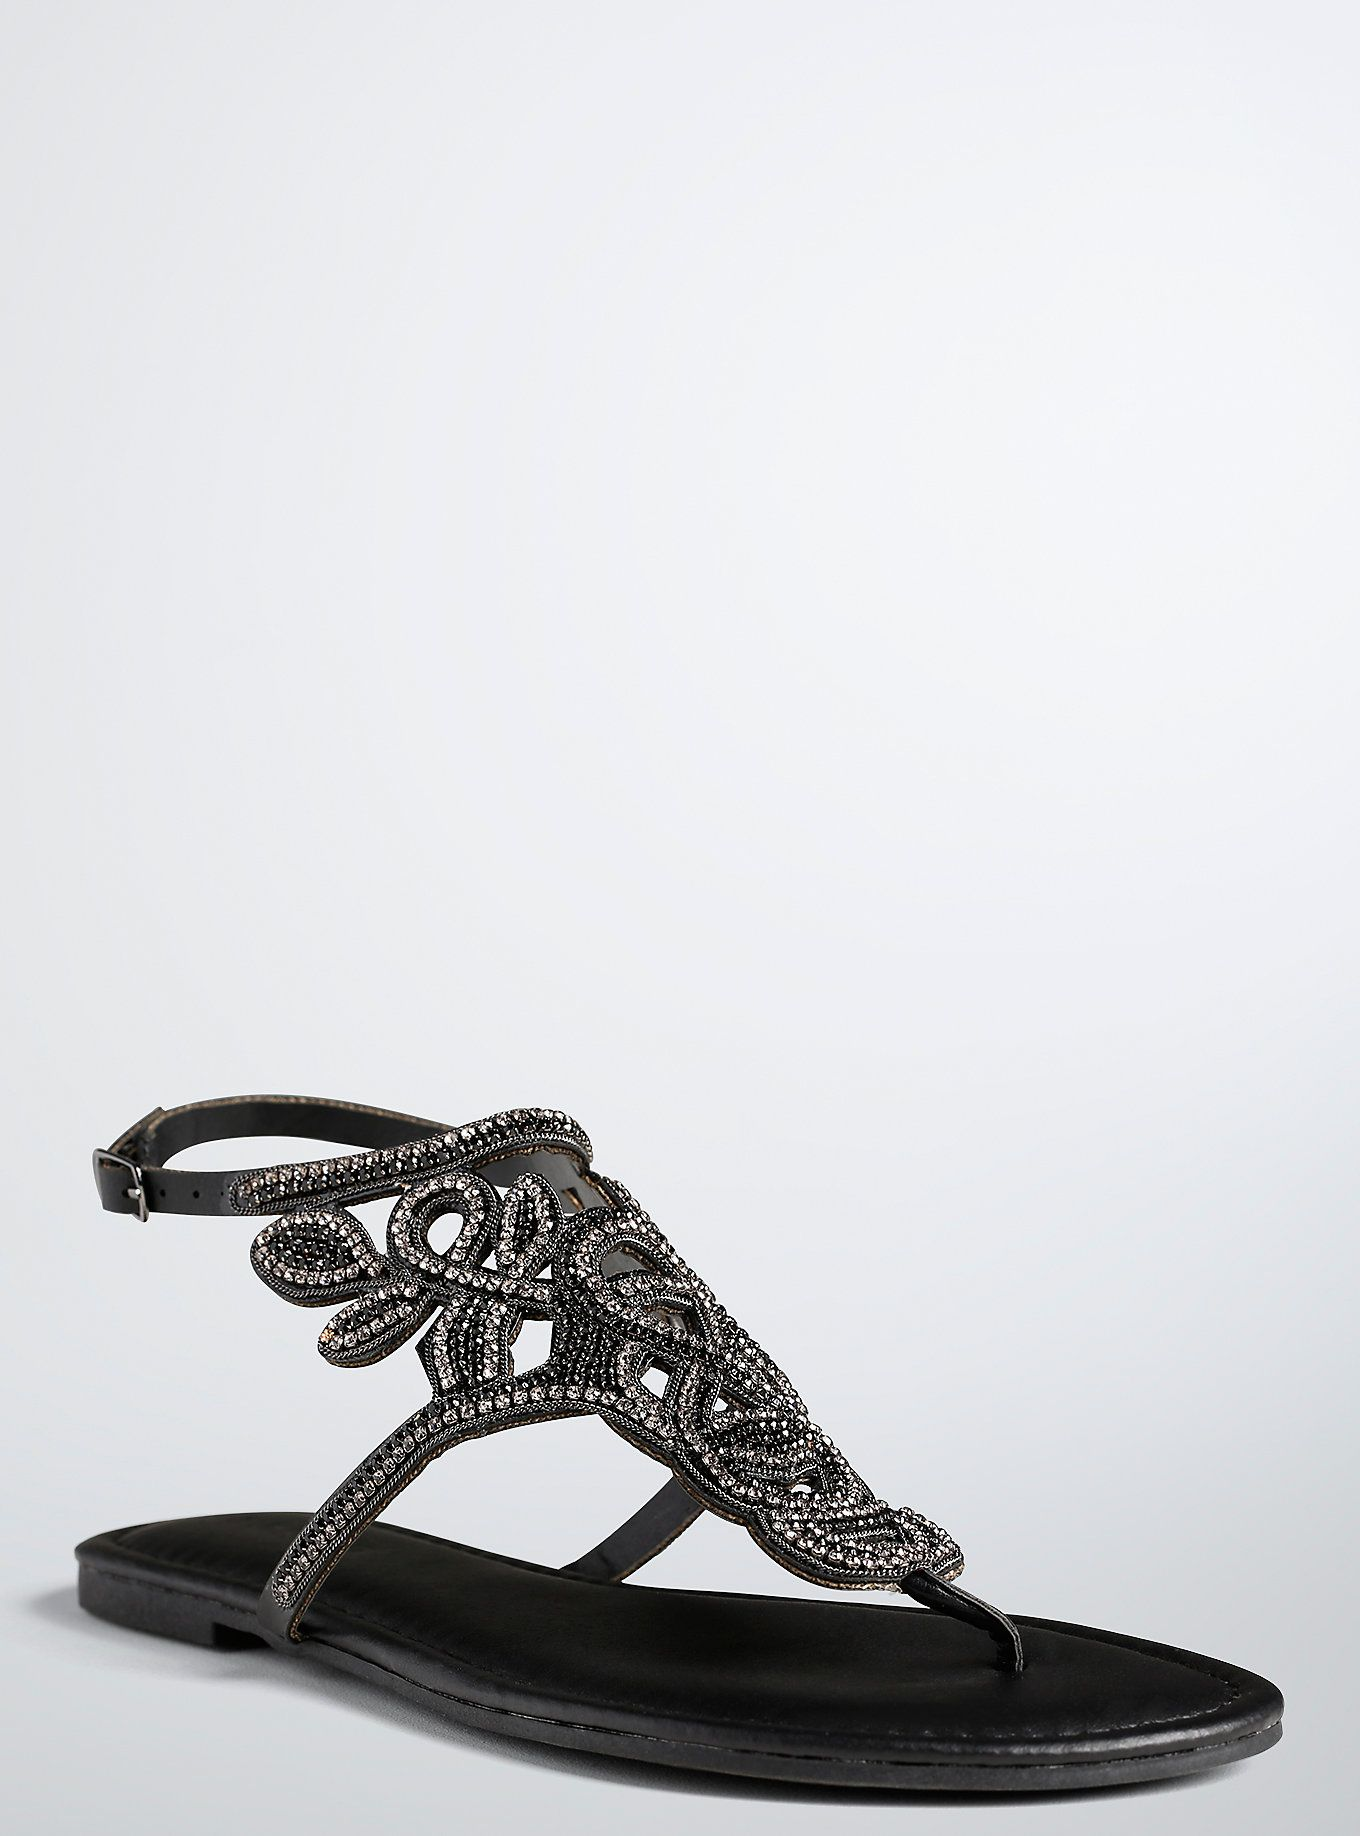 5e79e411f043 ... and bedazzling flat sandals. Smooth faux leather lines the sole  (keeping your foot feeling luxurious)